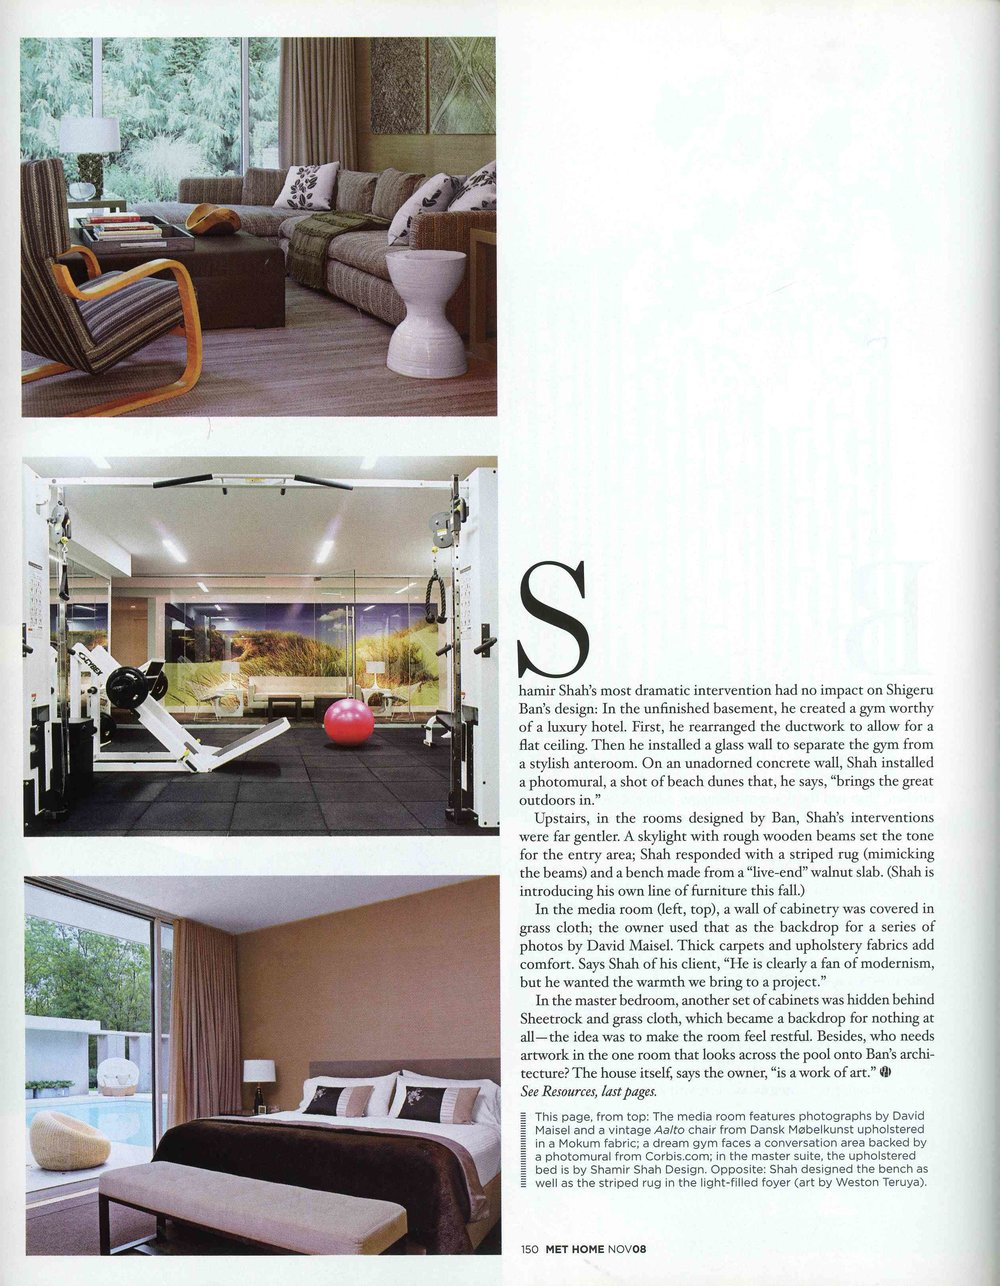 Met Home_Nov 08_Hamptons House_Full Article_Page_10.jpg